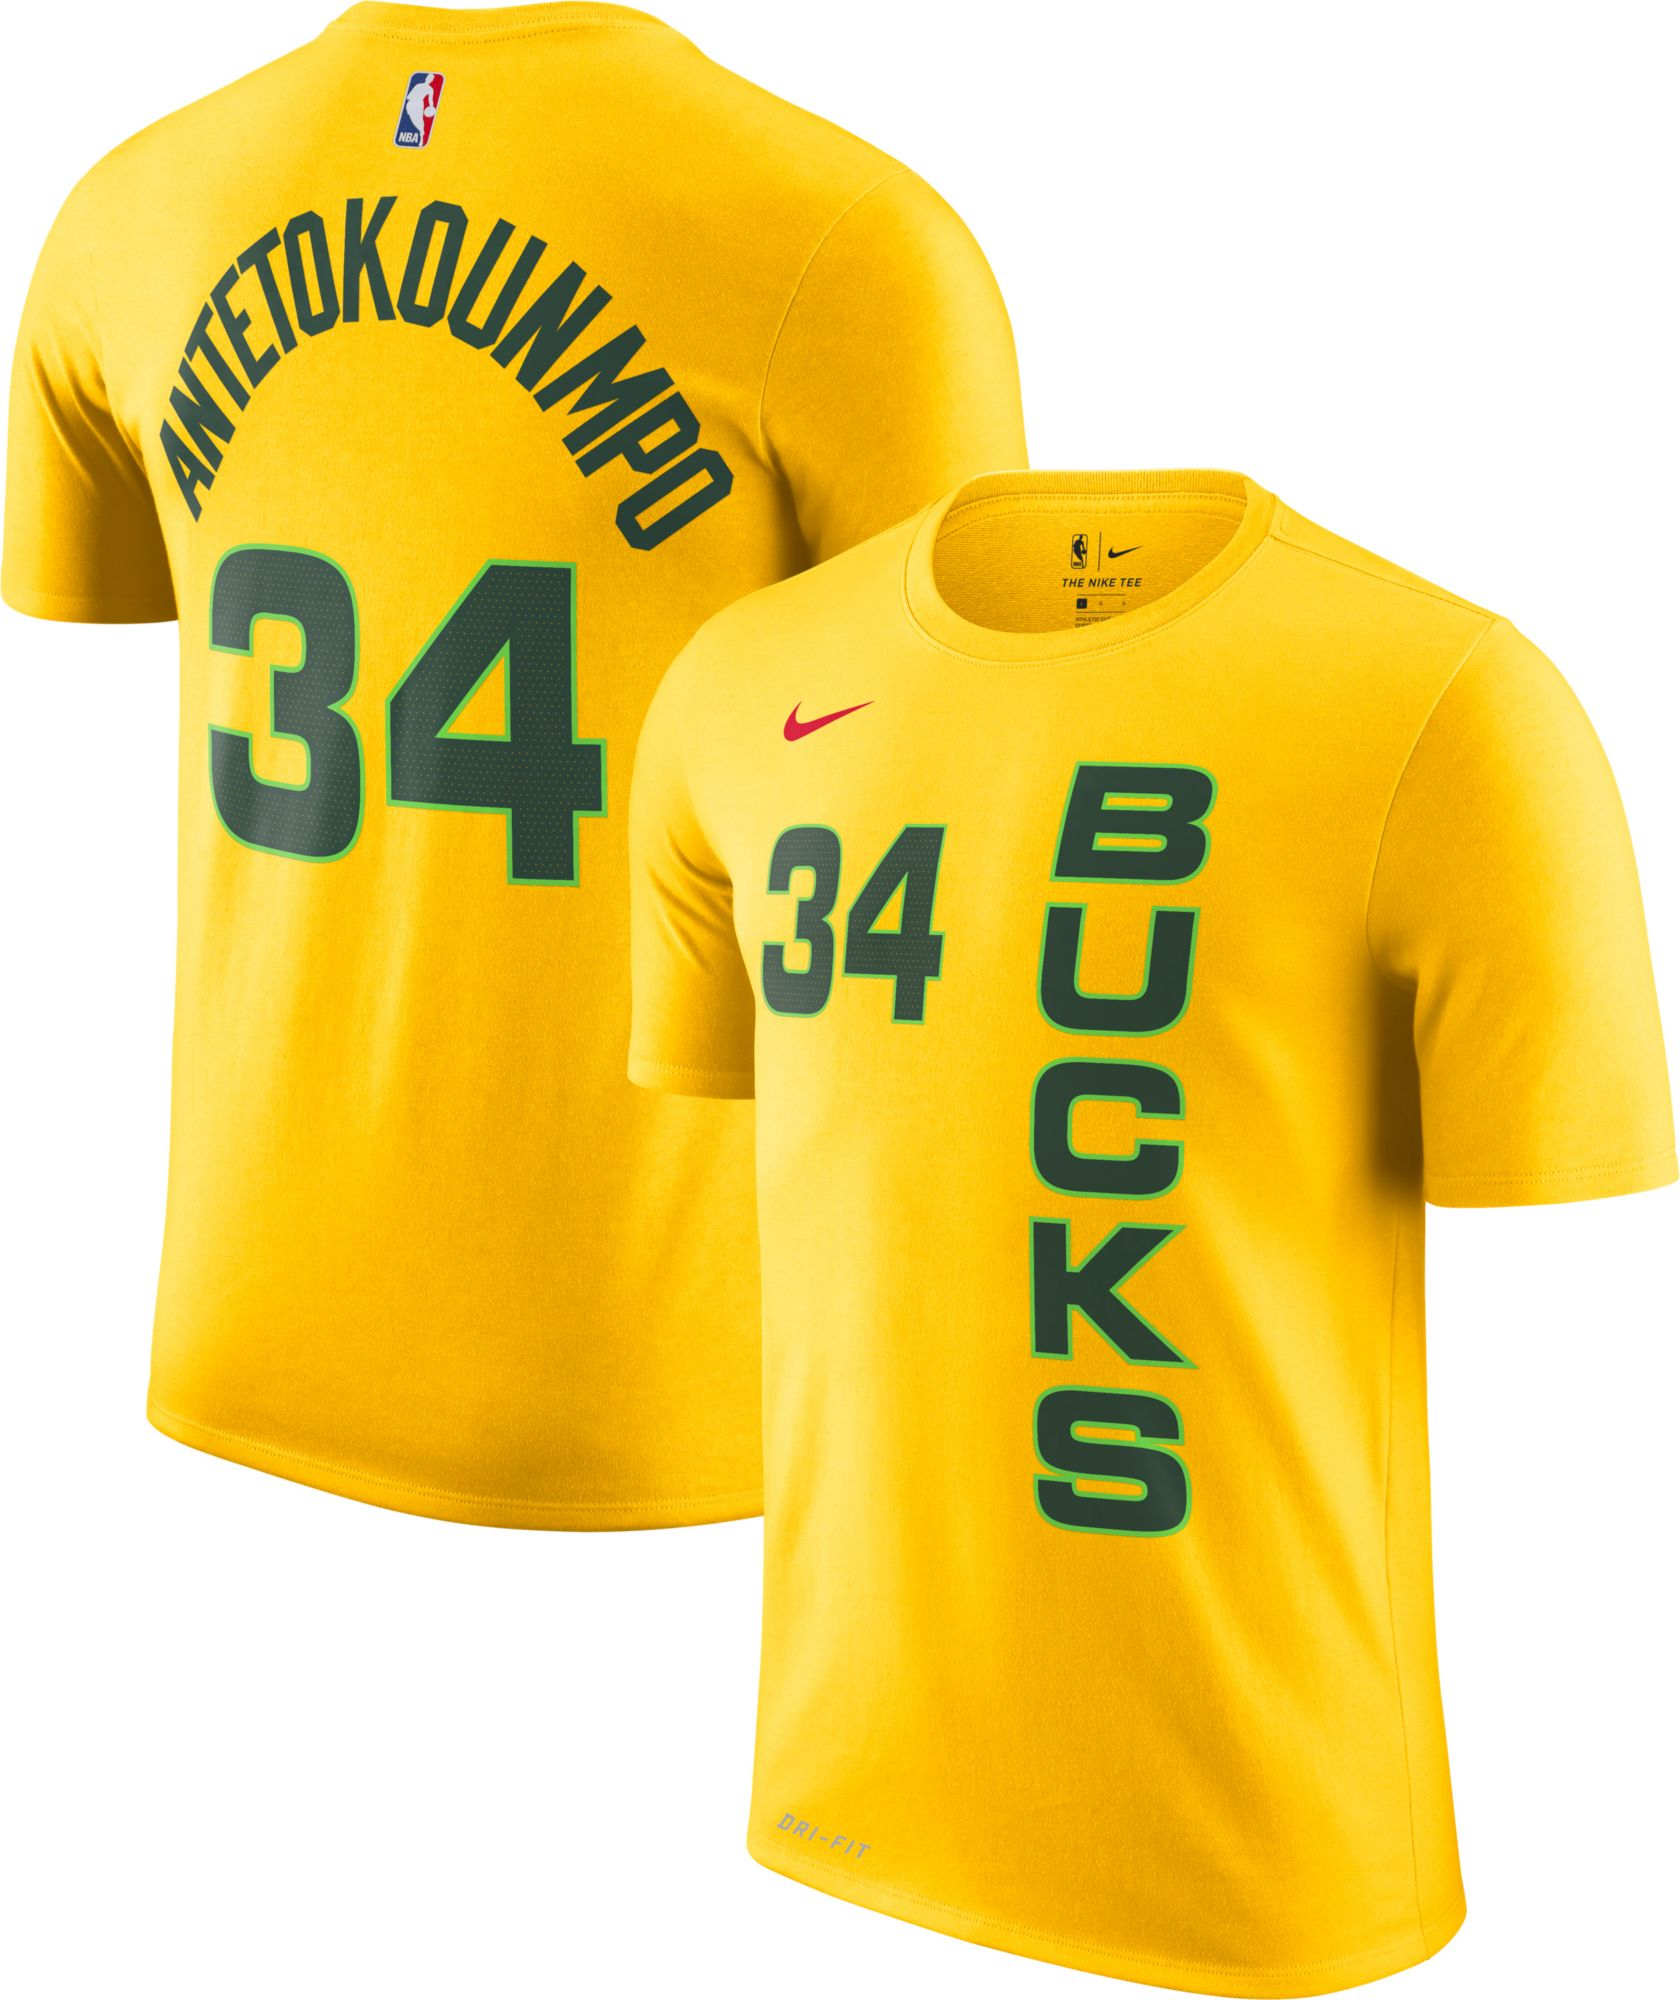 Nike Youth Milwaukee Bucks Giannis Antetokounmpo Dri-FIT City Edition T- Shirt 18f04e5ef